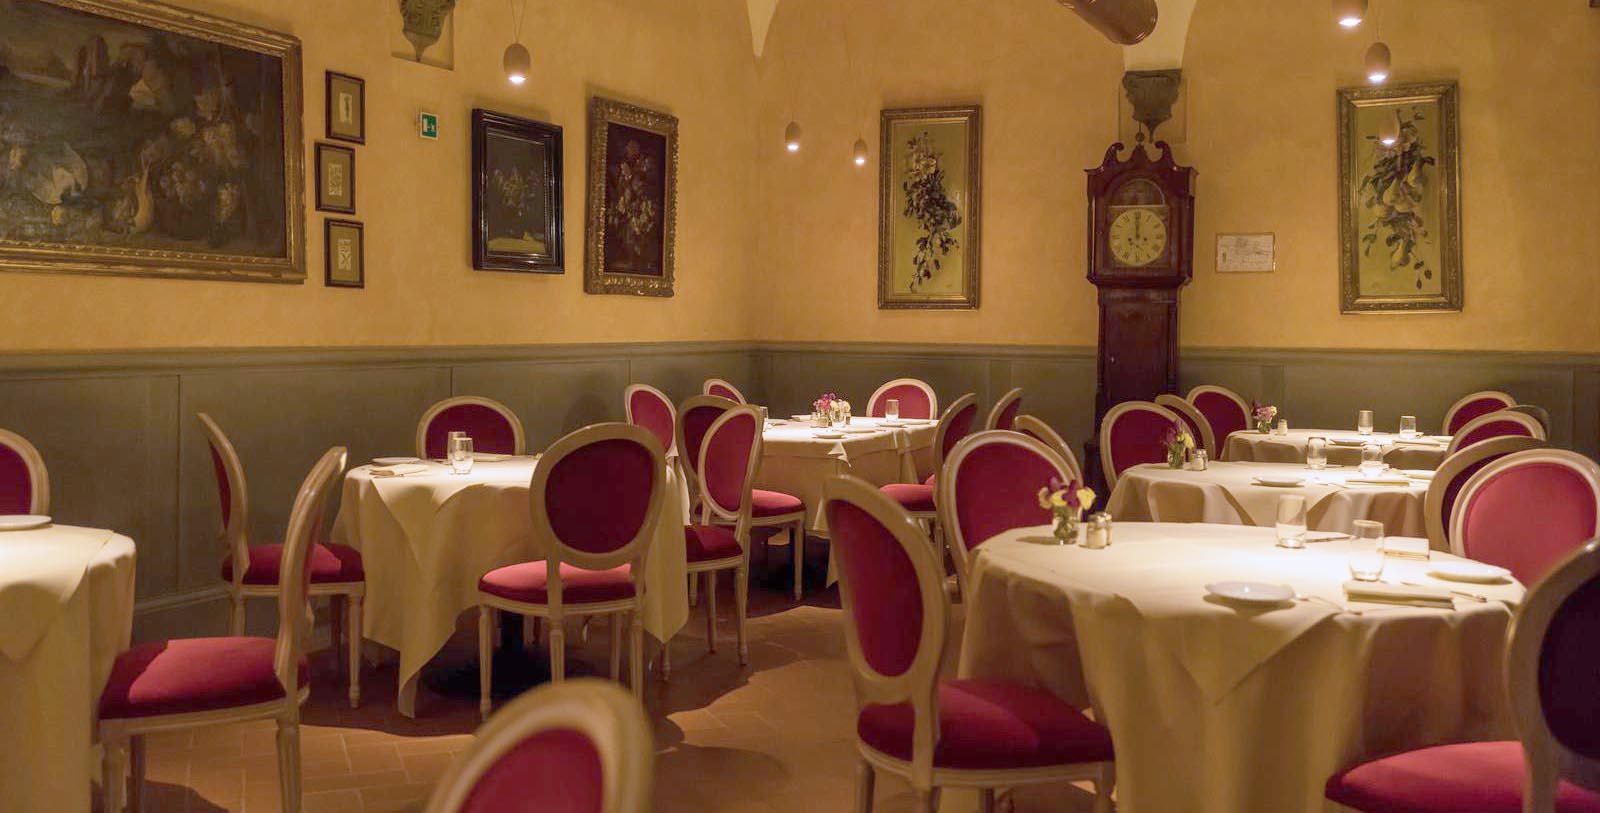 Image of La Chiostrina hotel restaurant Bernini Palace Hotel, 1500, Member of Historic Hotels Worldwide, in Florence, Italy, Taste